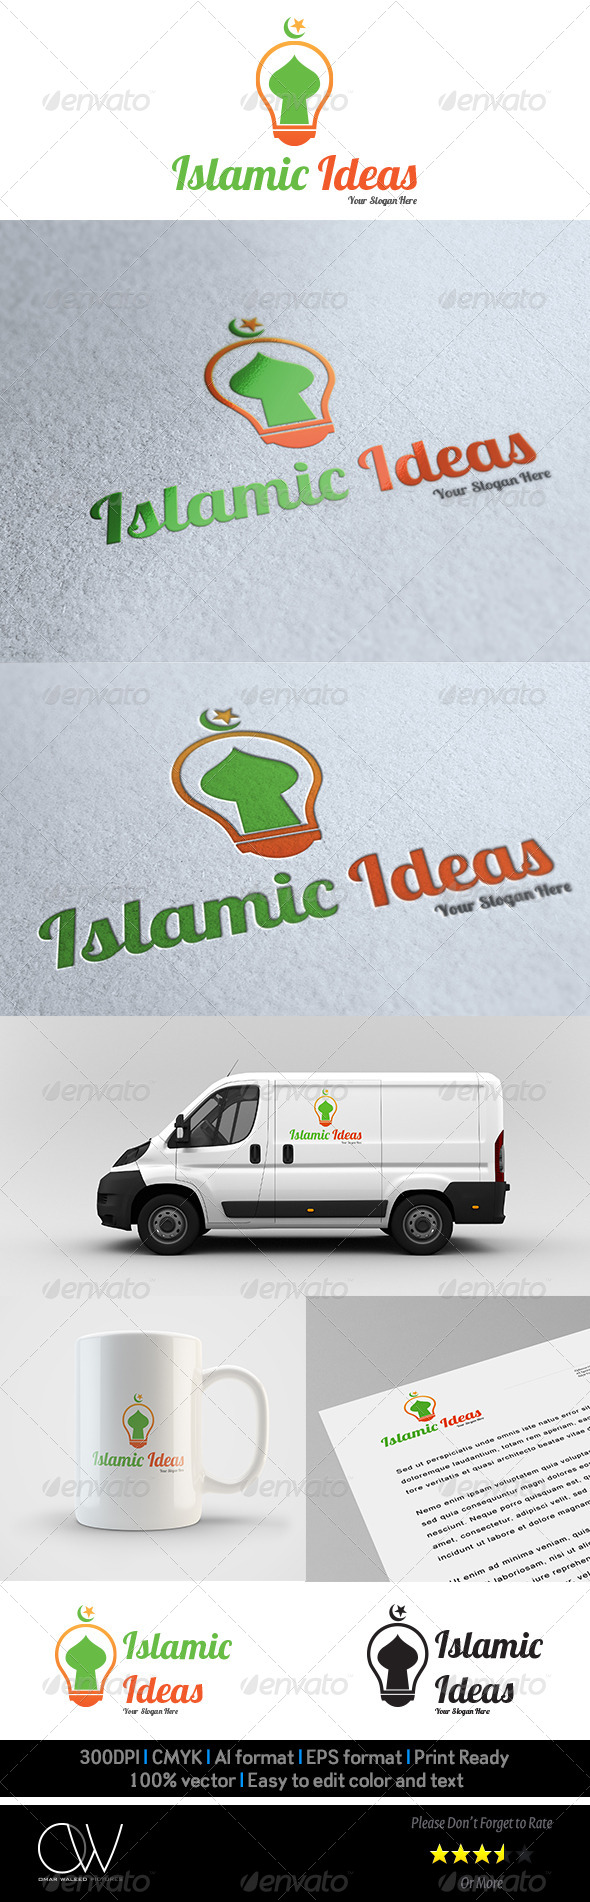 Islamic Ideas Logo Template